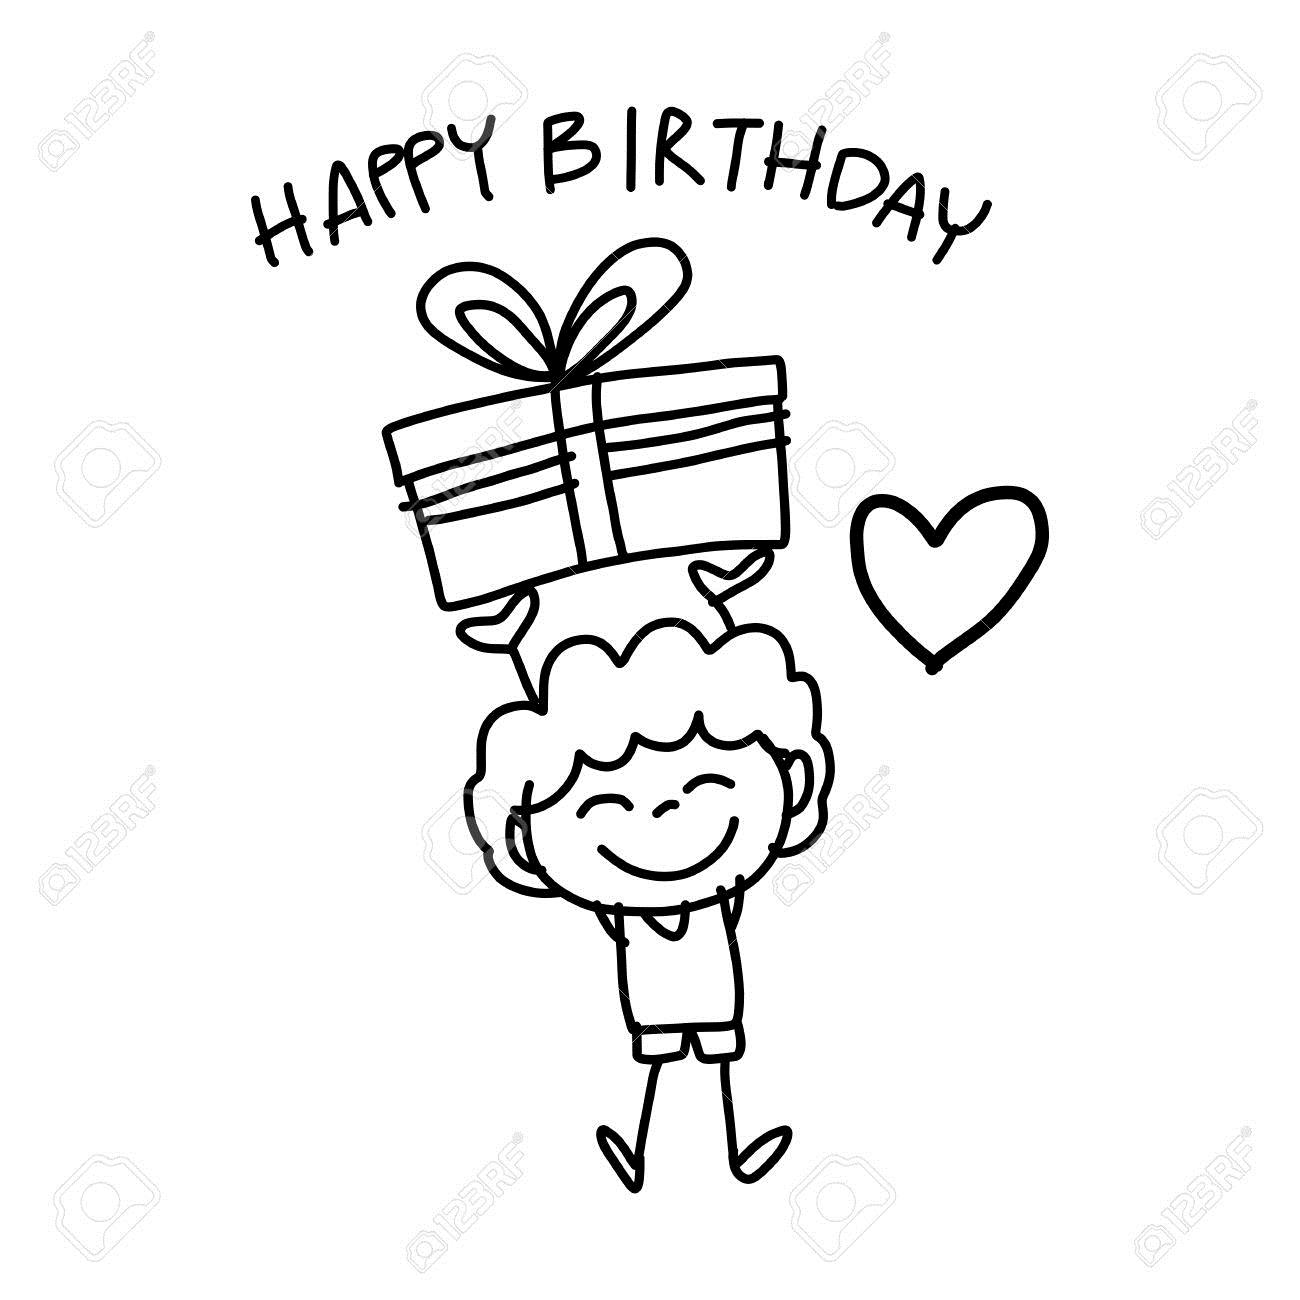 happy birthday drawing pictures ; 27911319-hand-drawing-cartoon-happy-birthday